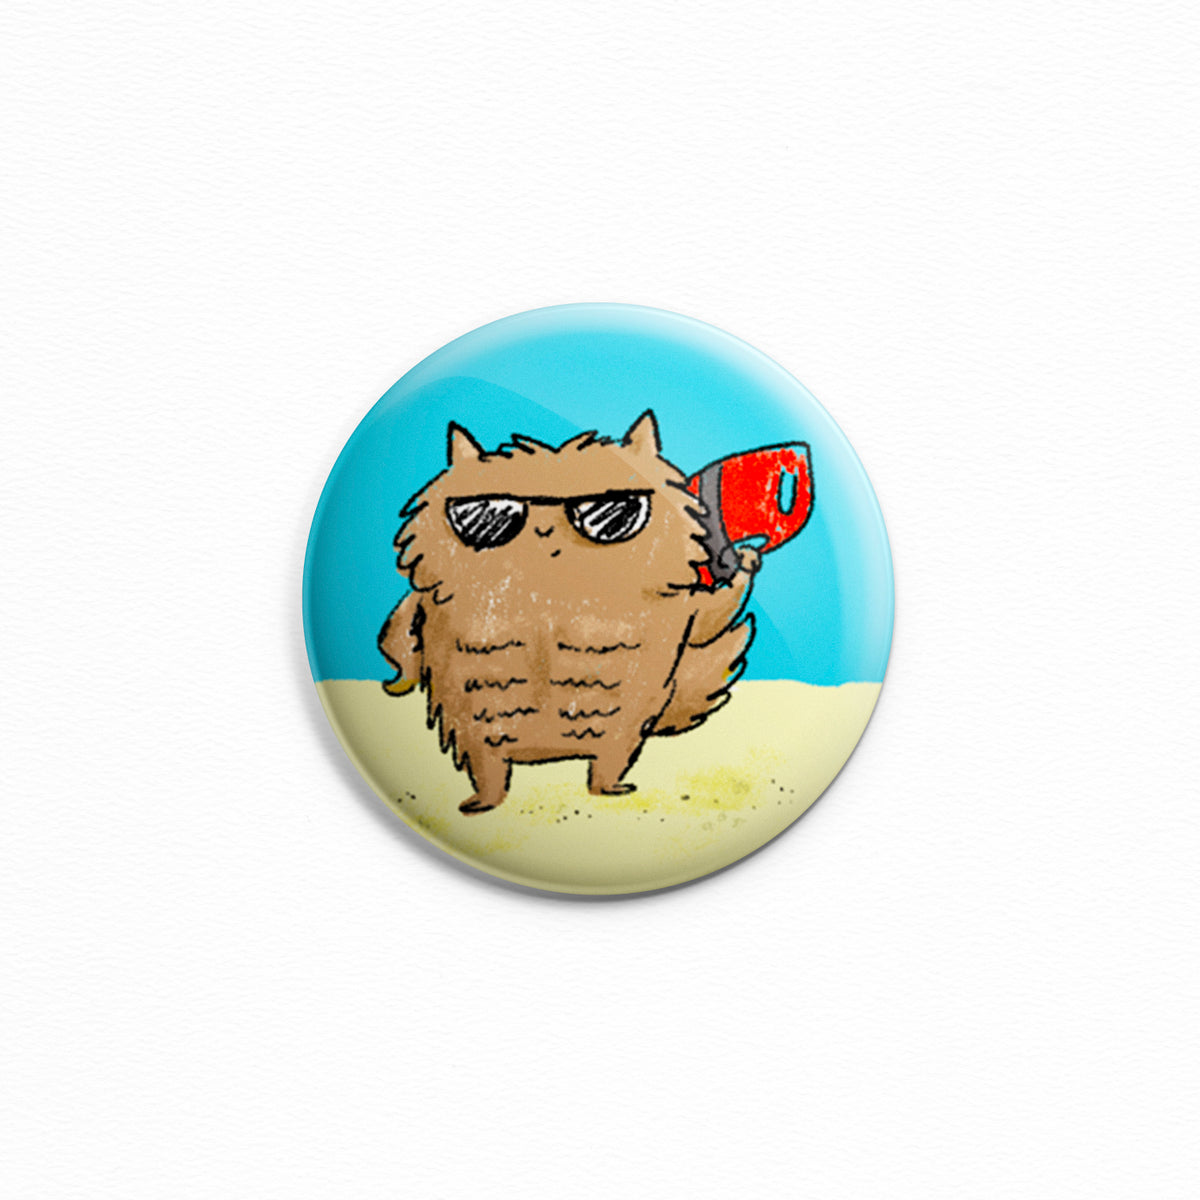 Cat Watch - Button or magnet with an illustration of a cat who is also a lifeguard at the beach. Made by My Cat Is People.